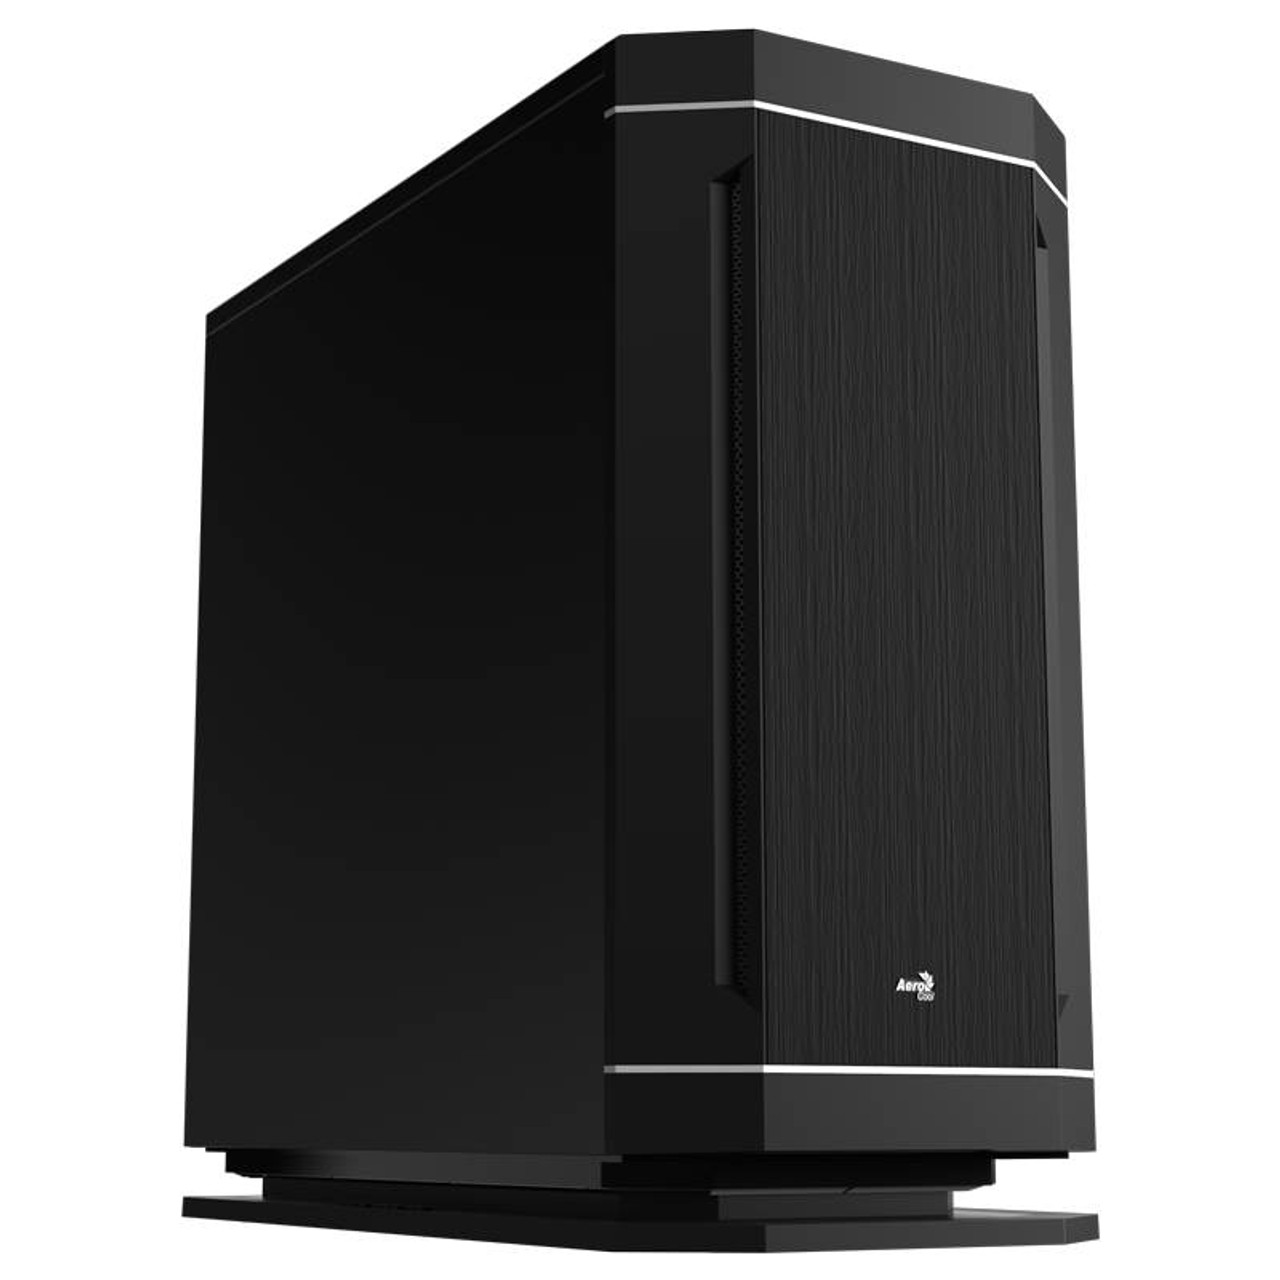 Image for Aerocool Dead Silence DS-230 ATX Mid-Tower Case - Black CX Computer Superstore